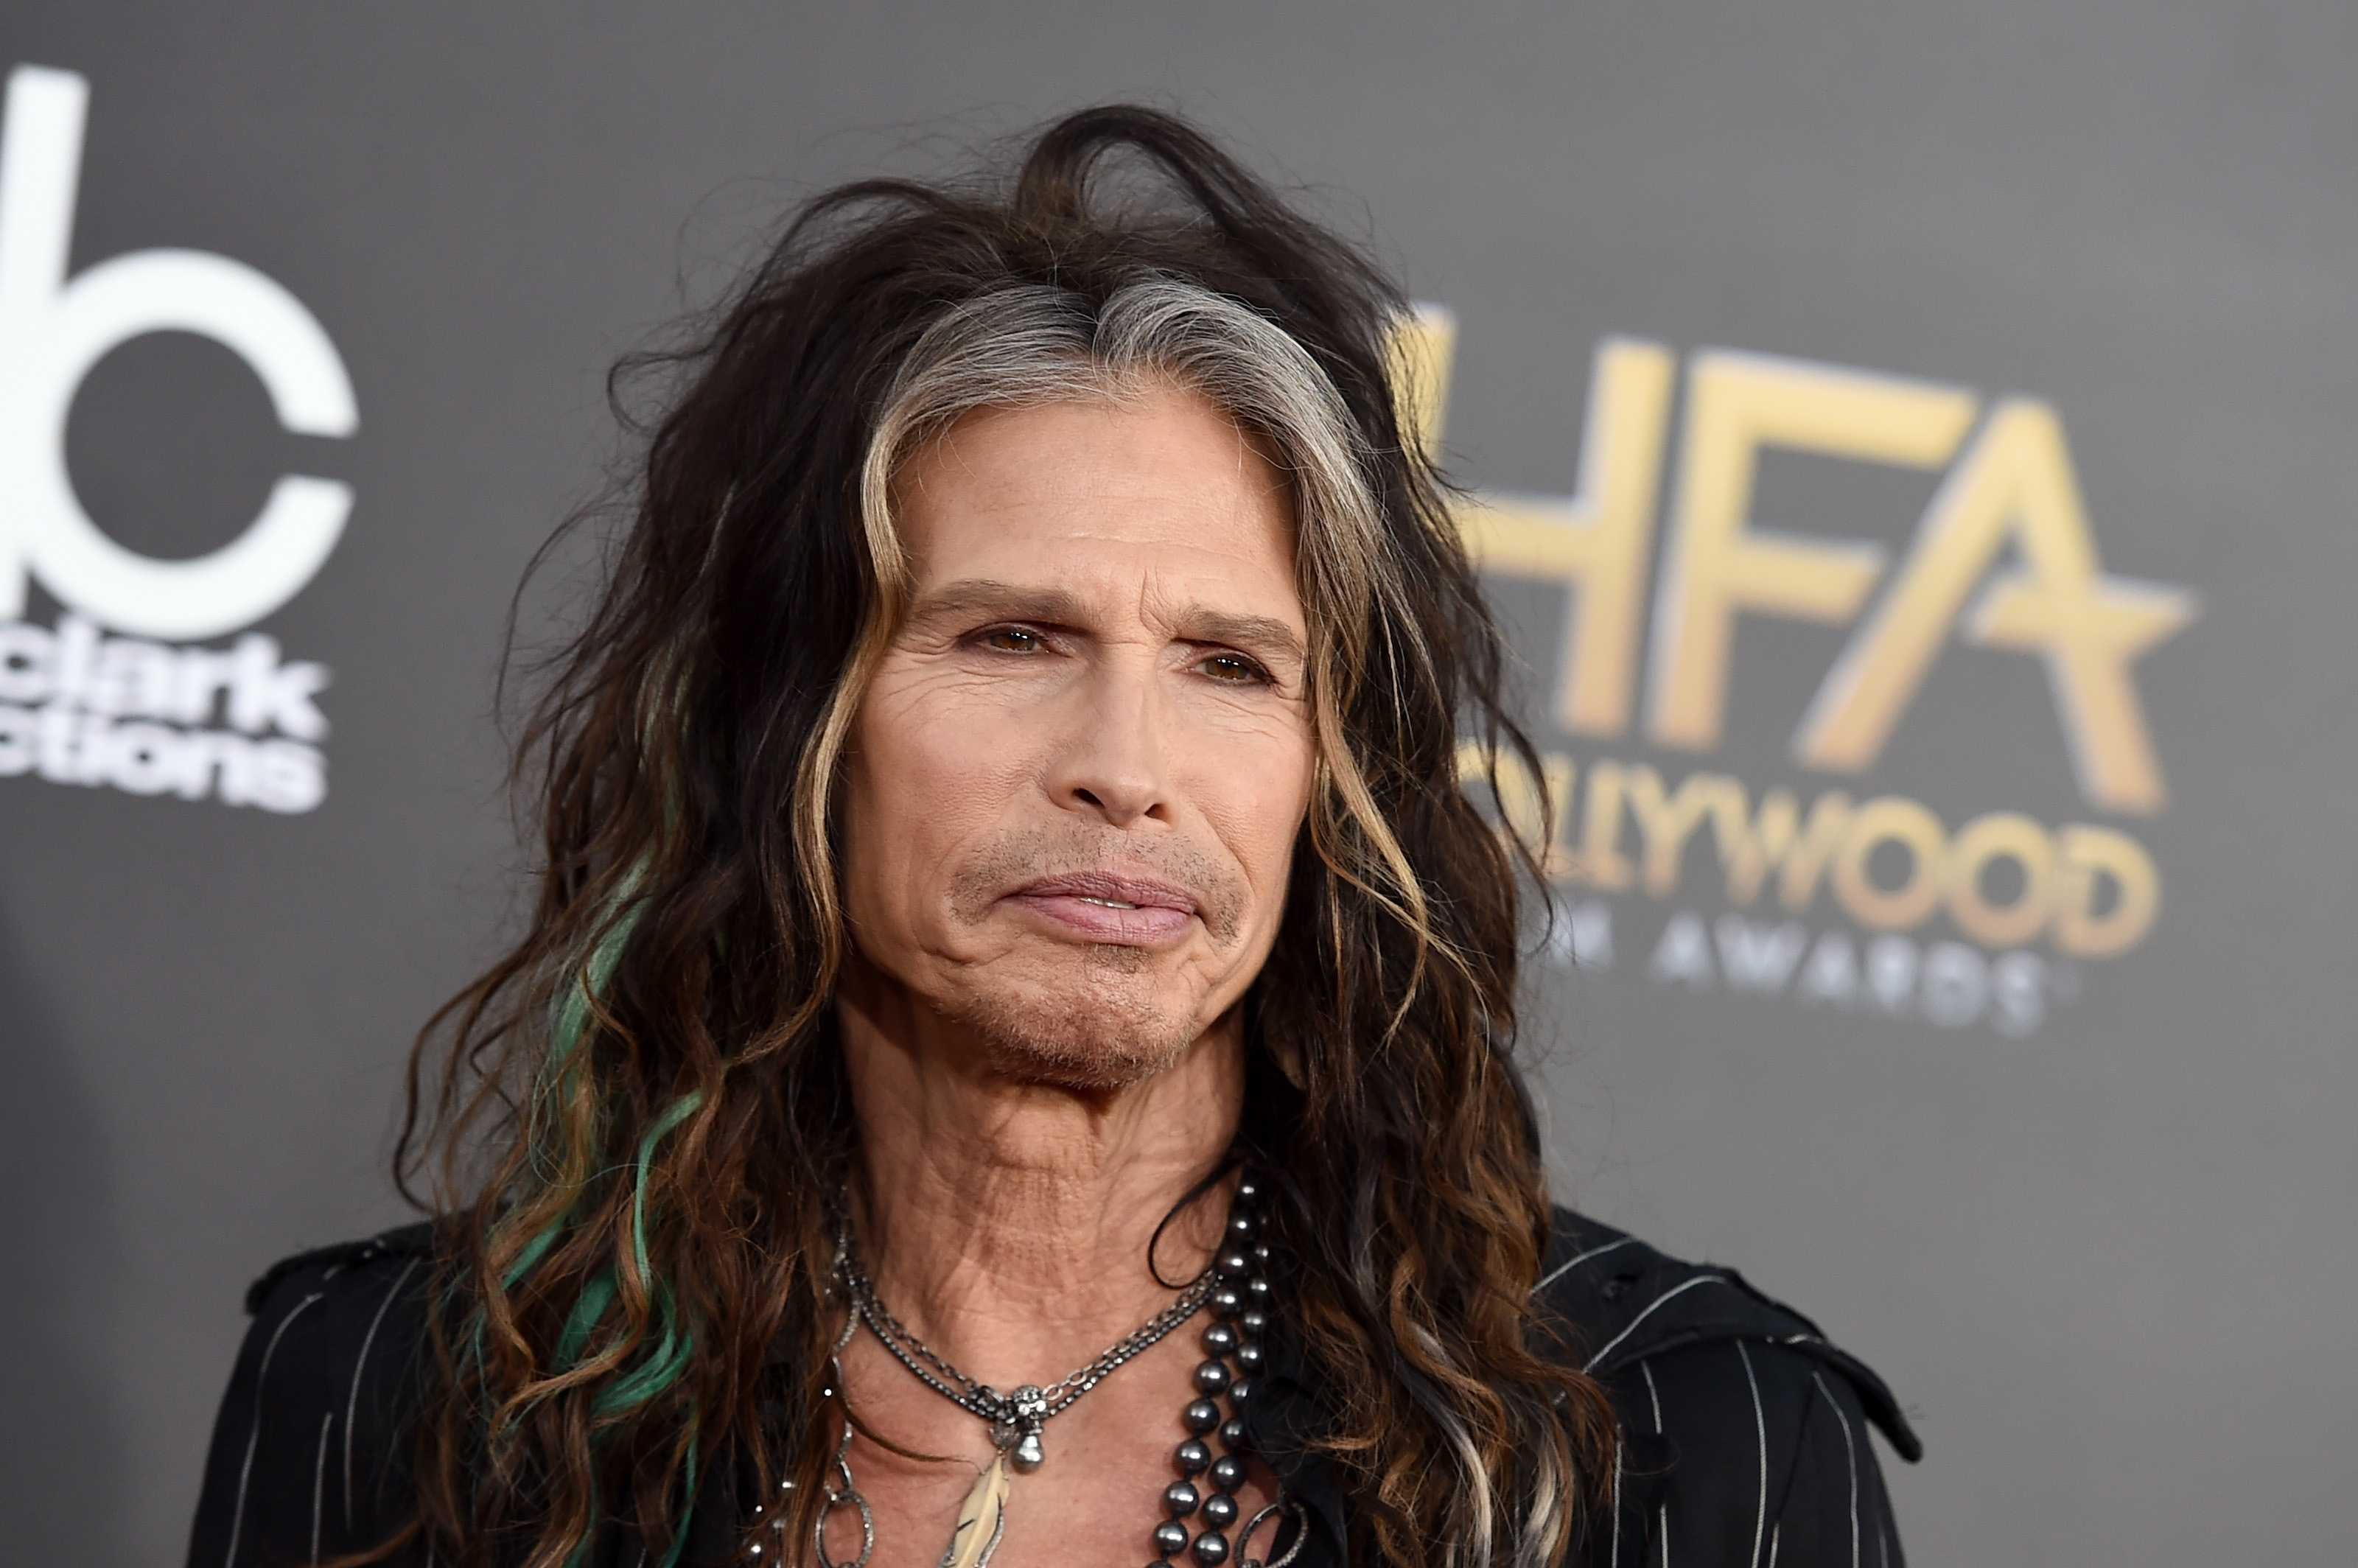 Steven Tyler cancels Aerosmith tour, seeks 'immediate care'